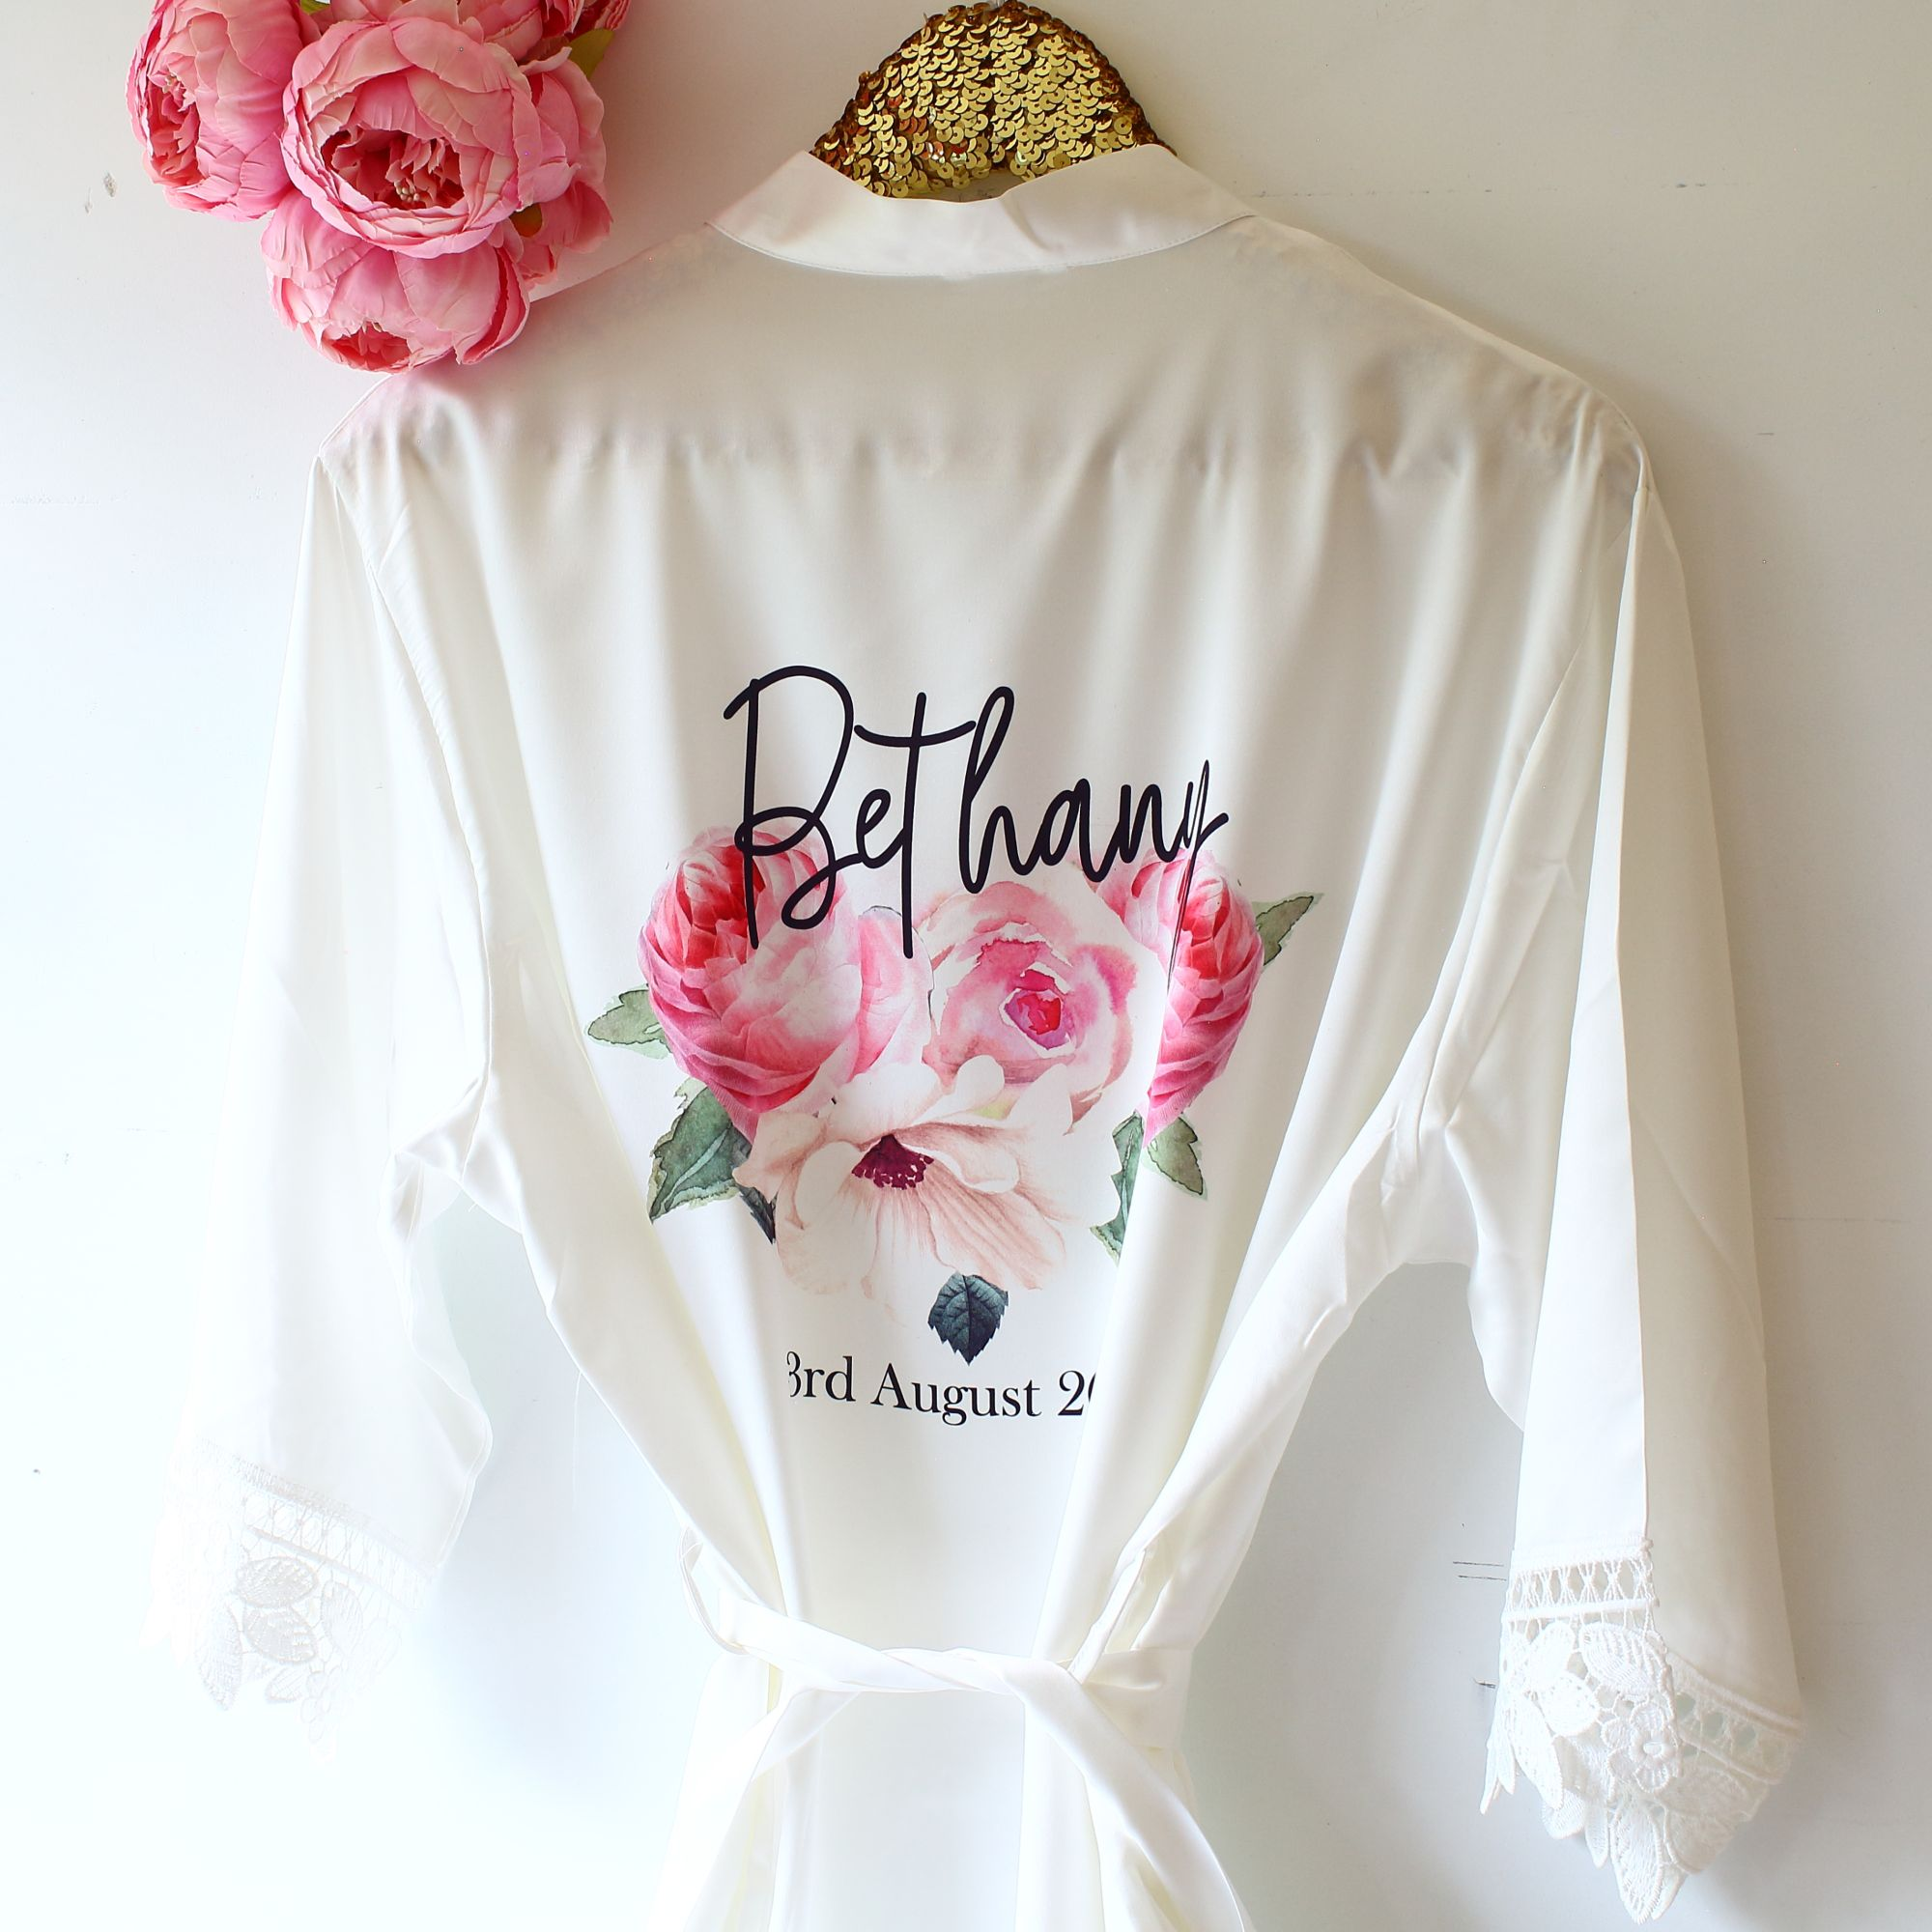 Personalised satin lace robe